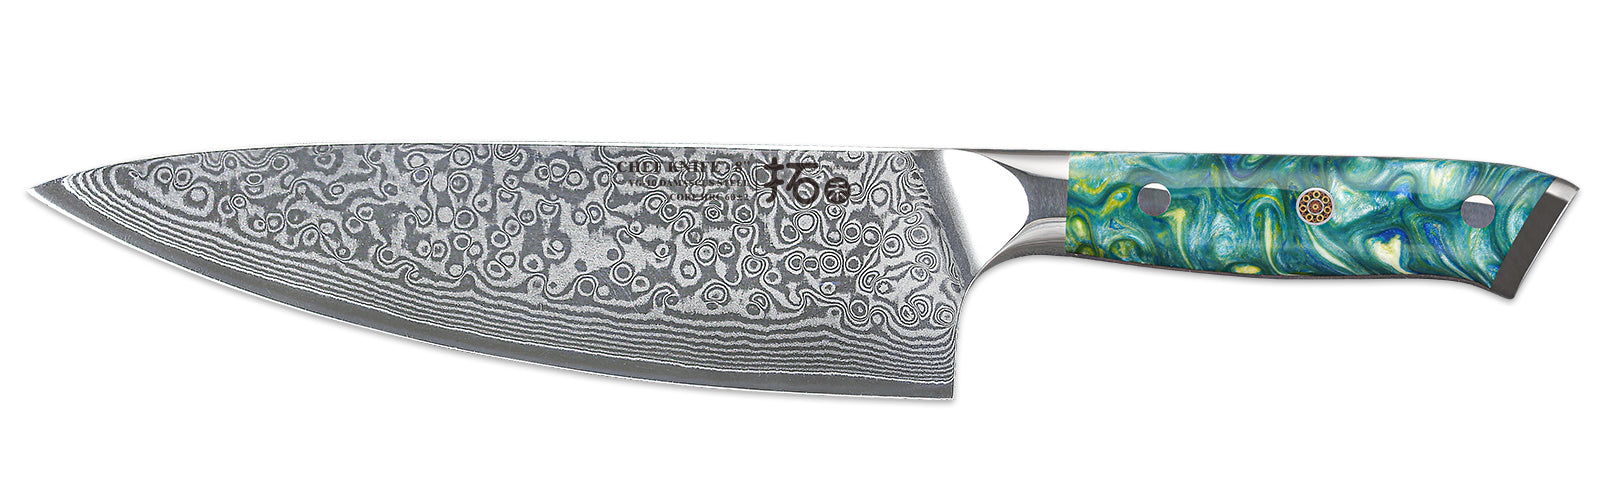 Best VG-10 Damascus Steel Chef Knife Made in USA